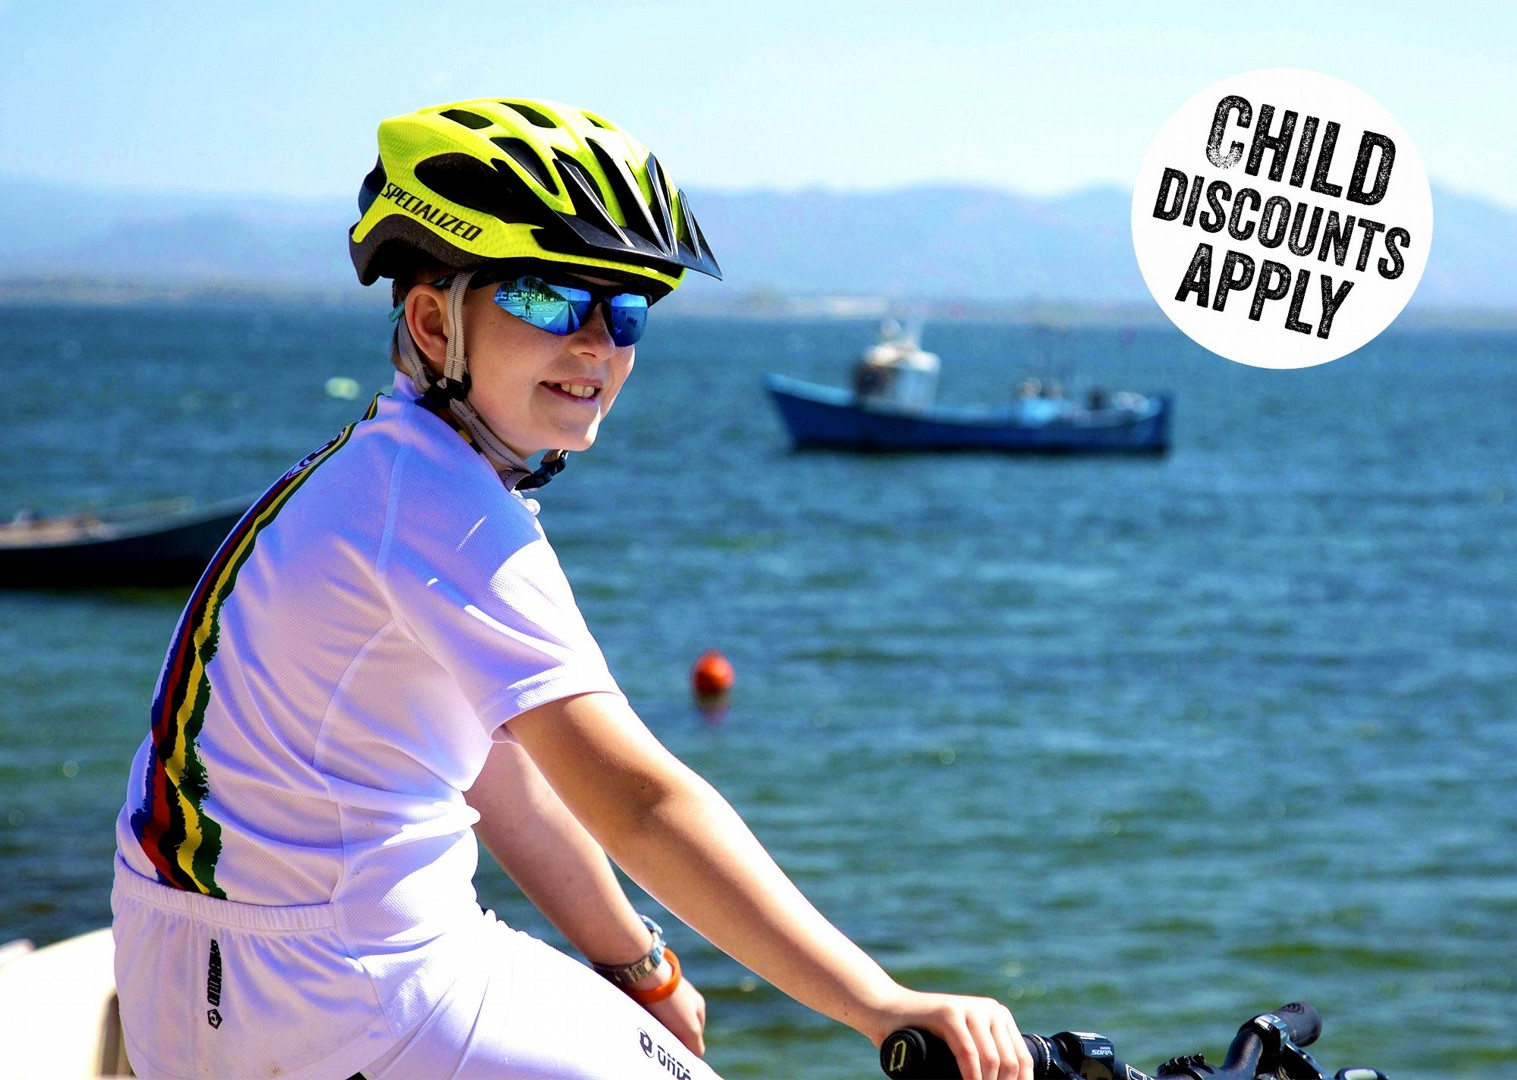 Coasts and Islands.jpg - Italy - Sardinia - Coasts and Islands - Self-Guided Family Cycling Holiday - Family Cycling